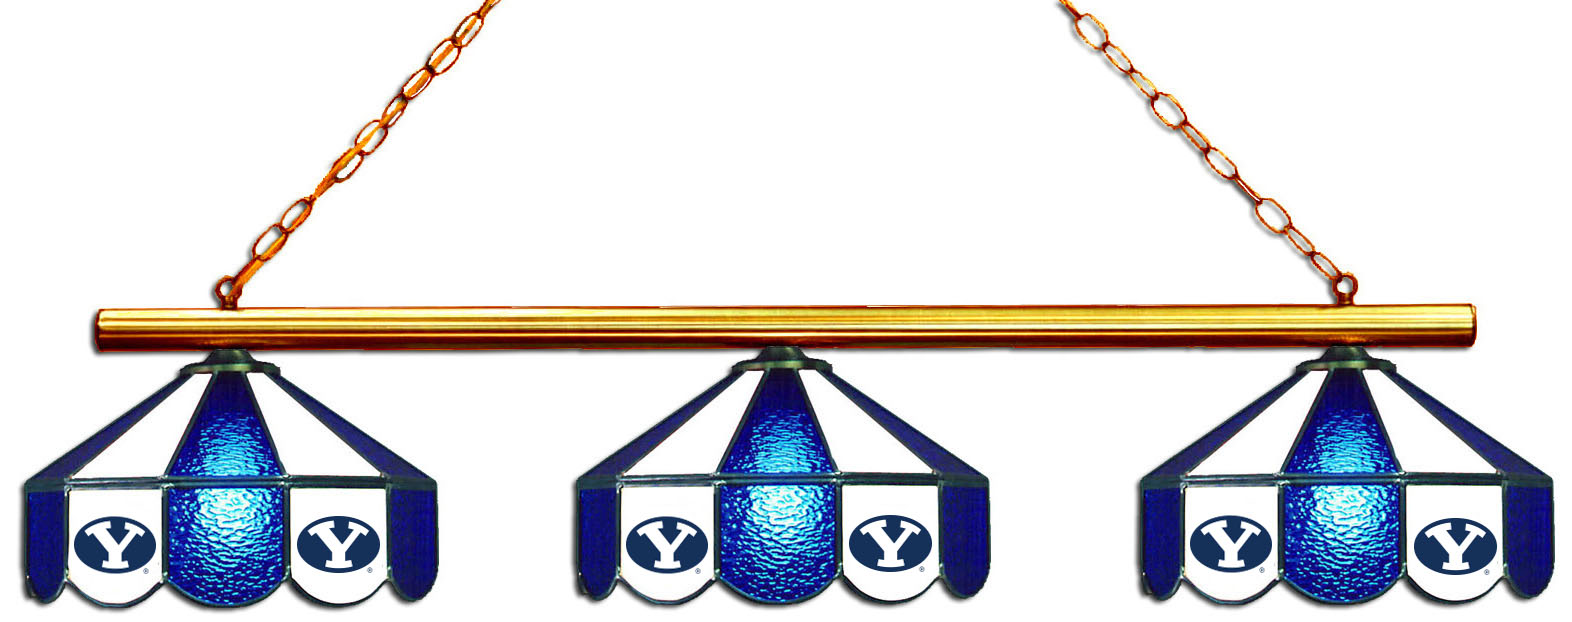 Brigham Young Hanging Lamps